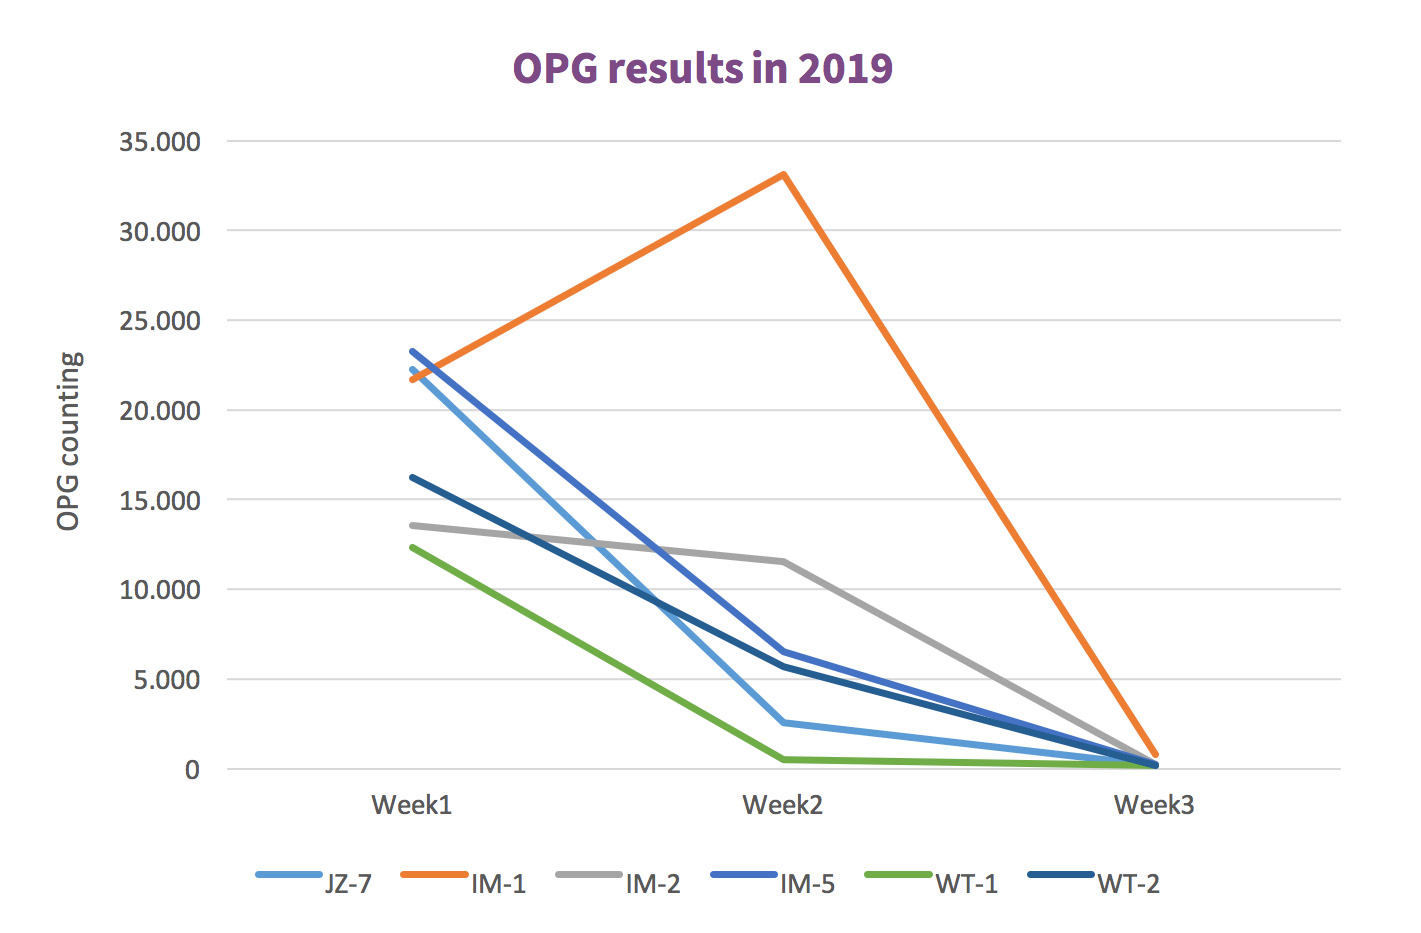 Eimeria Vaccination & OPG (Eimeria Oocyst Counting) in 2019